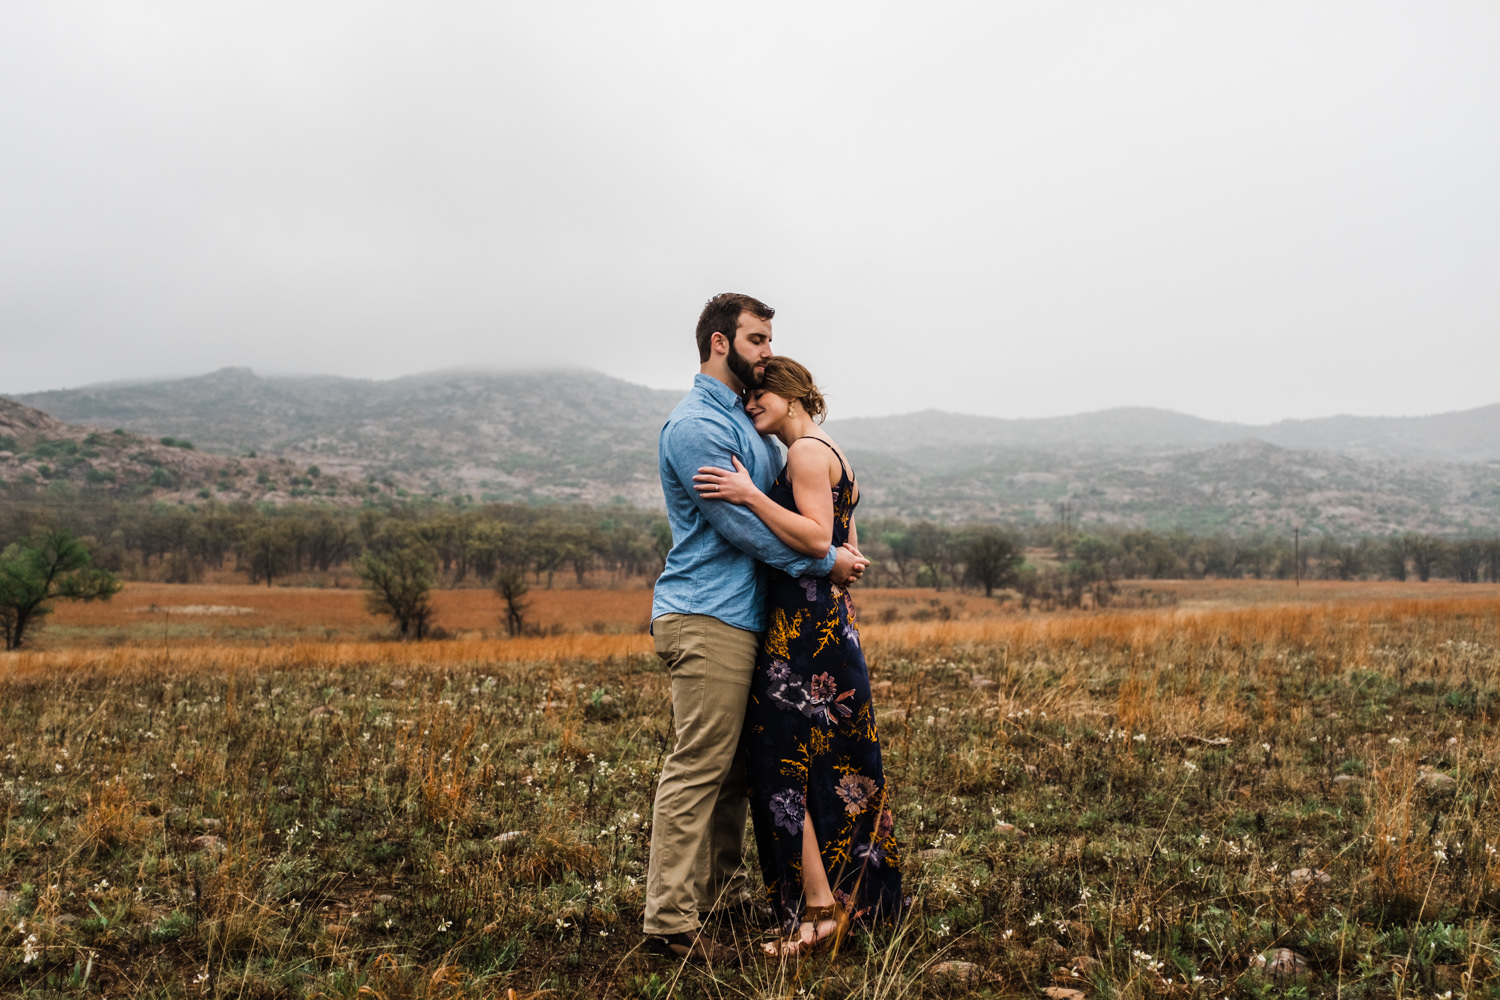 Oklahoma Engagement-Neal Dieker-Oklahoma Wedding Photography-Wichita Mountains-Wichita, Kansas Portrait Photographer-177.jpg